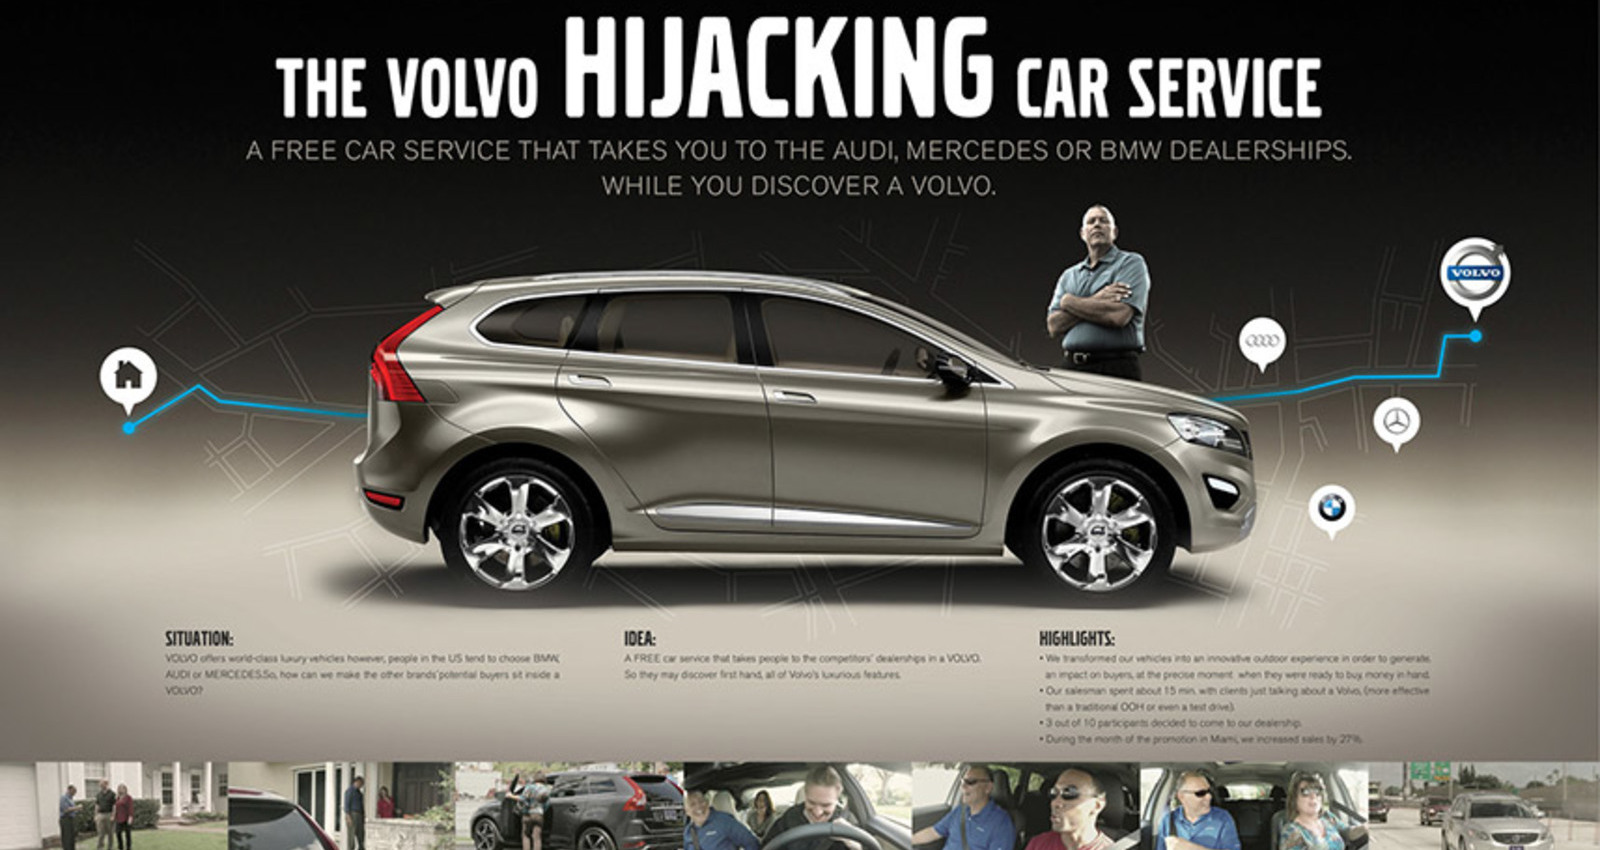 THE VOLVO HIJACKING CAR SERVICE